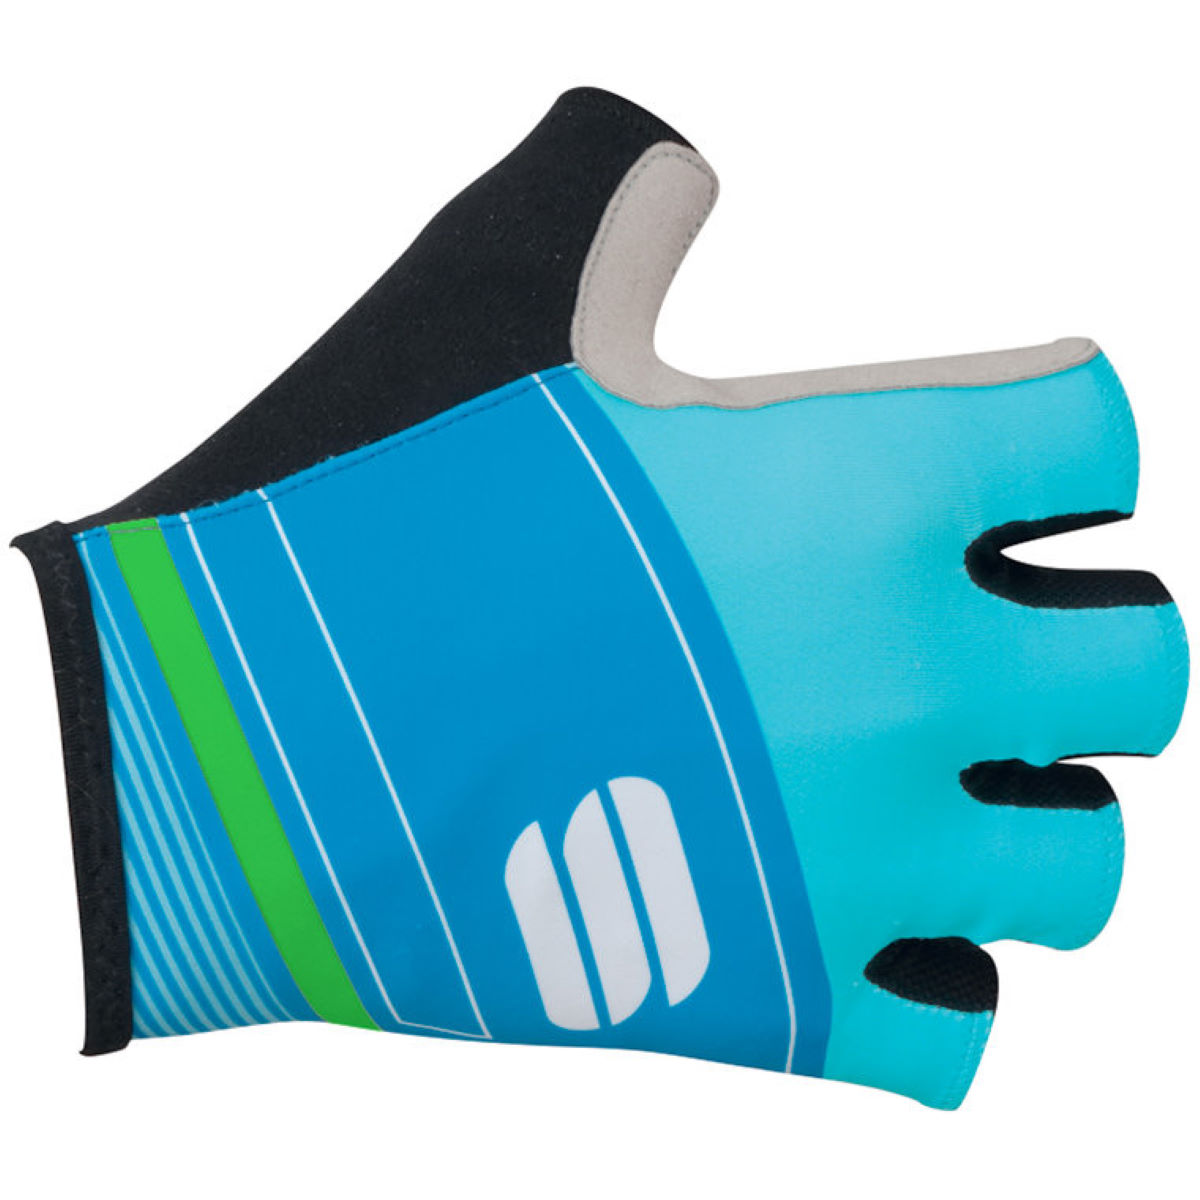 Gants courts Sportful Gruppetto Pro - XL Blue/Green Gants courts